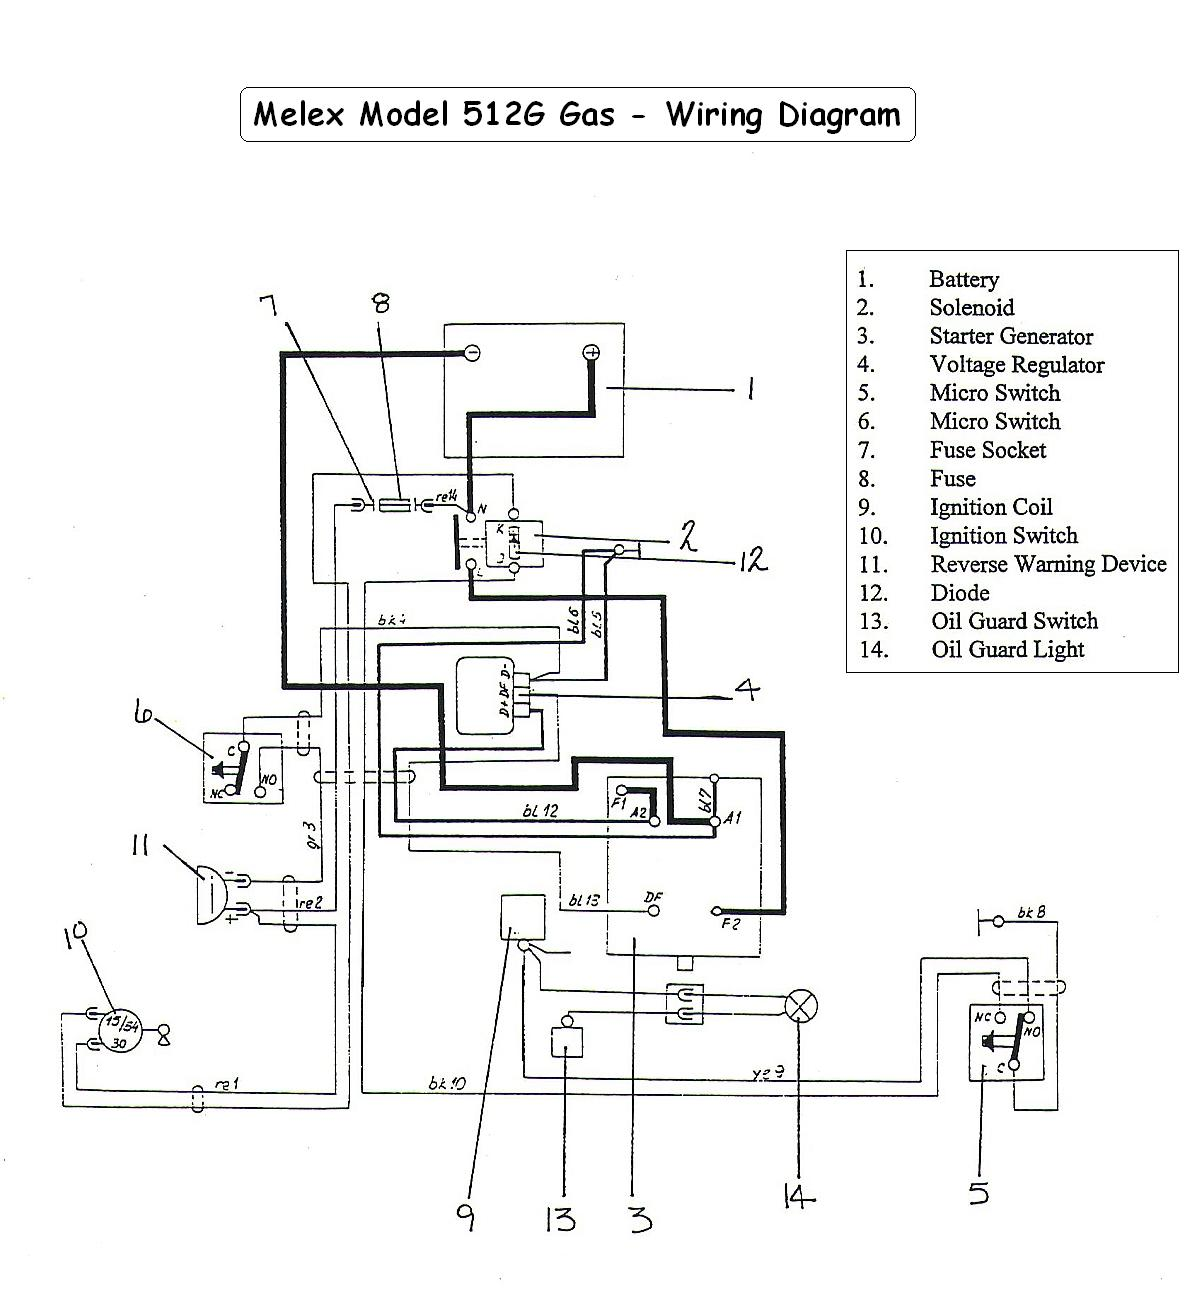 ez go gas engine diagram, ezgo golf cart drive clutch diagram, ezgo gas workhorse wiring-diagram, ezgo golf cart ignition diagram, ezgo differential diagram, ezgo golf cart brake diagram, ezgo carburetor diagram, ezgo pds wiring-diagram, ez go golf cart diagram, ezgo gas electrical diagrams, 1994 ezgo gas wiring diagram, ez go txt battery diagram, yamaha golf cart parts diagram, ezgo motor diagram, ezgo gas golf cart specifications, ez go electrical diagram, ezgo txt wiring-diagram, 1979 ezgo golf cart wiring diagram, 1998 ezgo gas wiring diagram, ezgo golf cart light wiring diagram, on ezgo golf cart wiring diagram gas engine